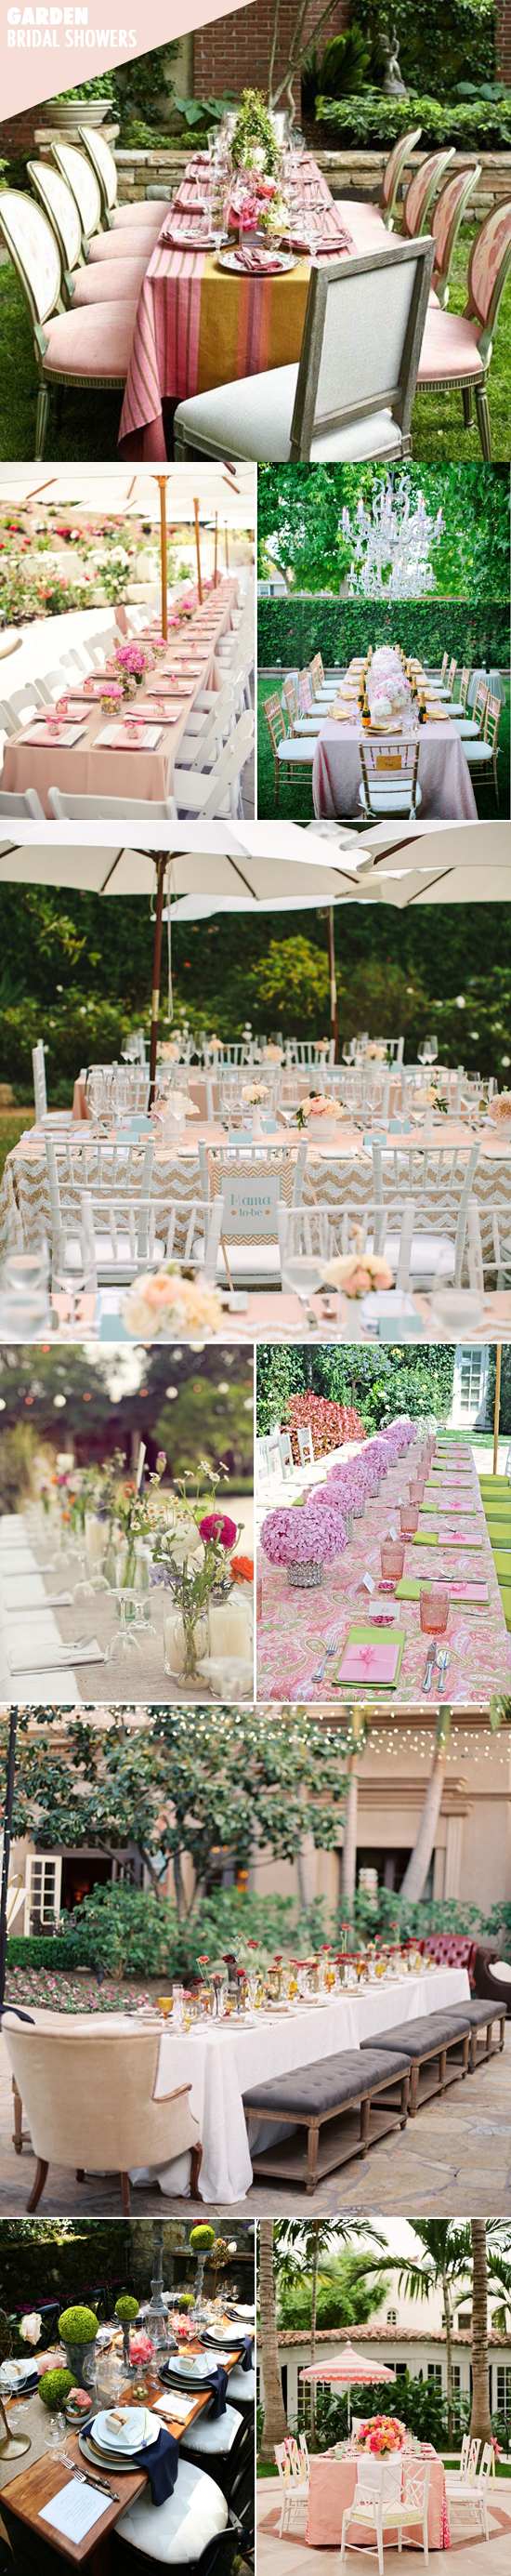 Tiffany-Brooks-Garden-Themed-Bridal-Shower-Inspiration